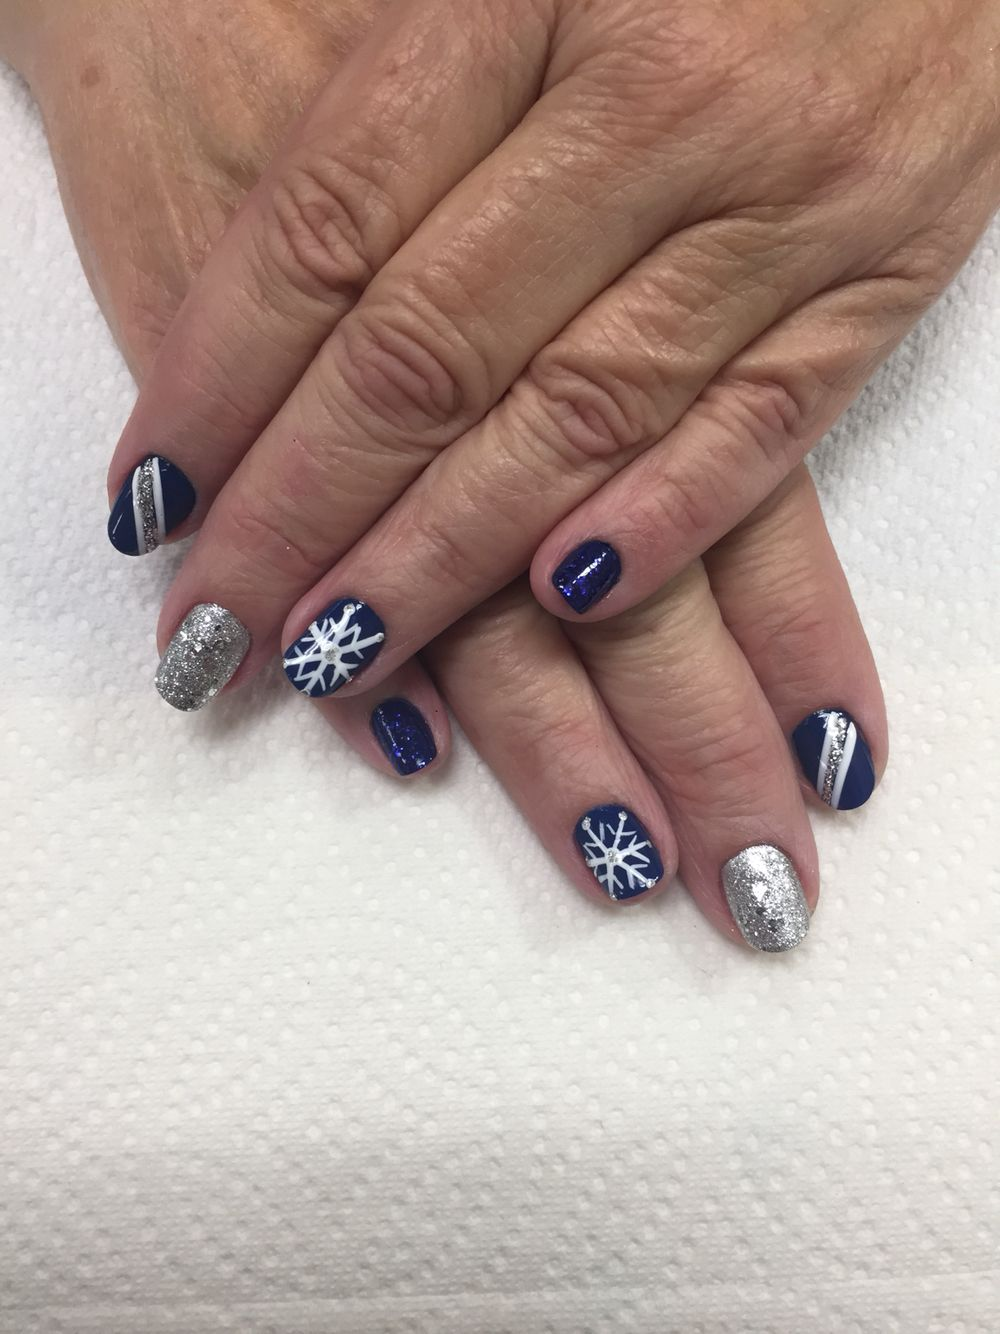 Manicure With Nail Designs Winter By Rebeca At Beauty And The Beach